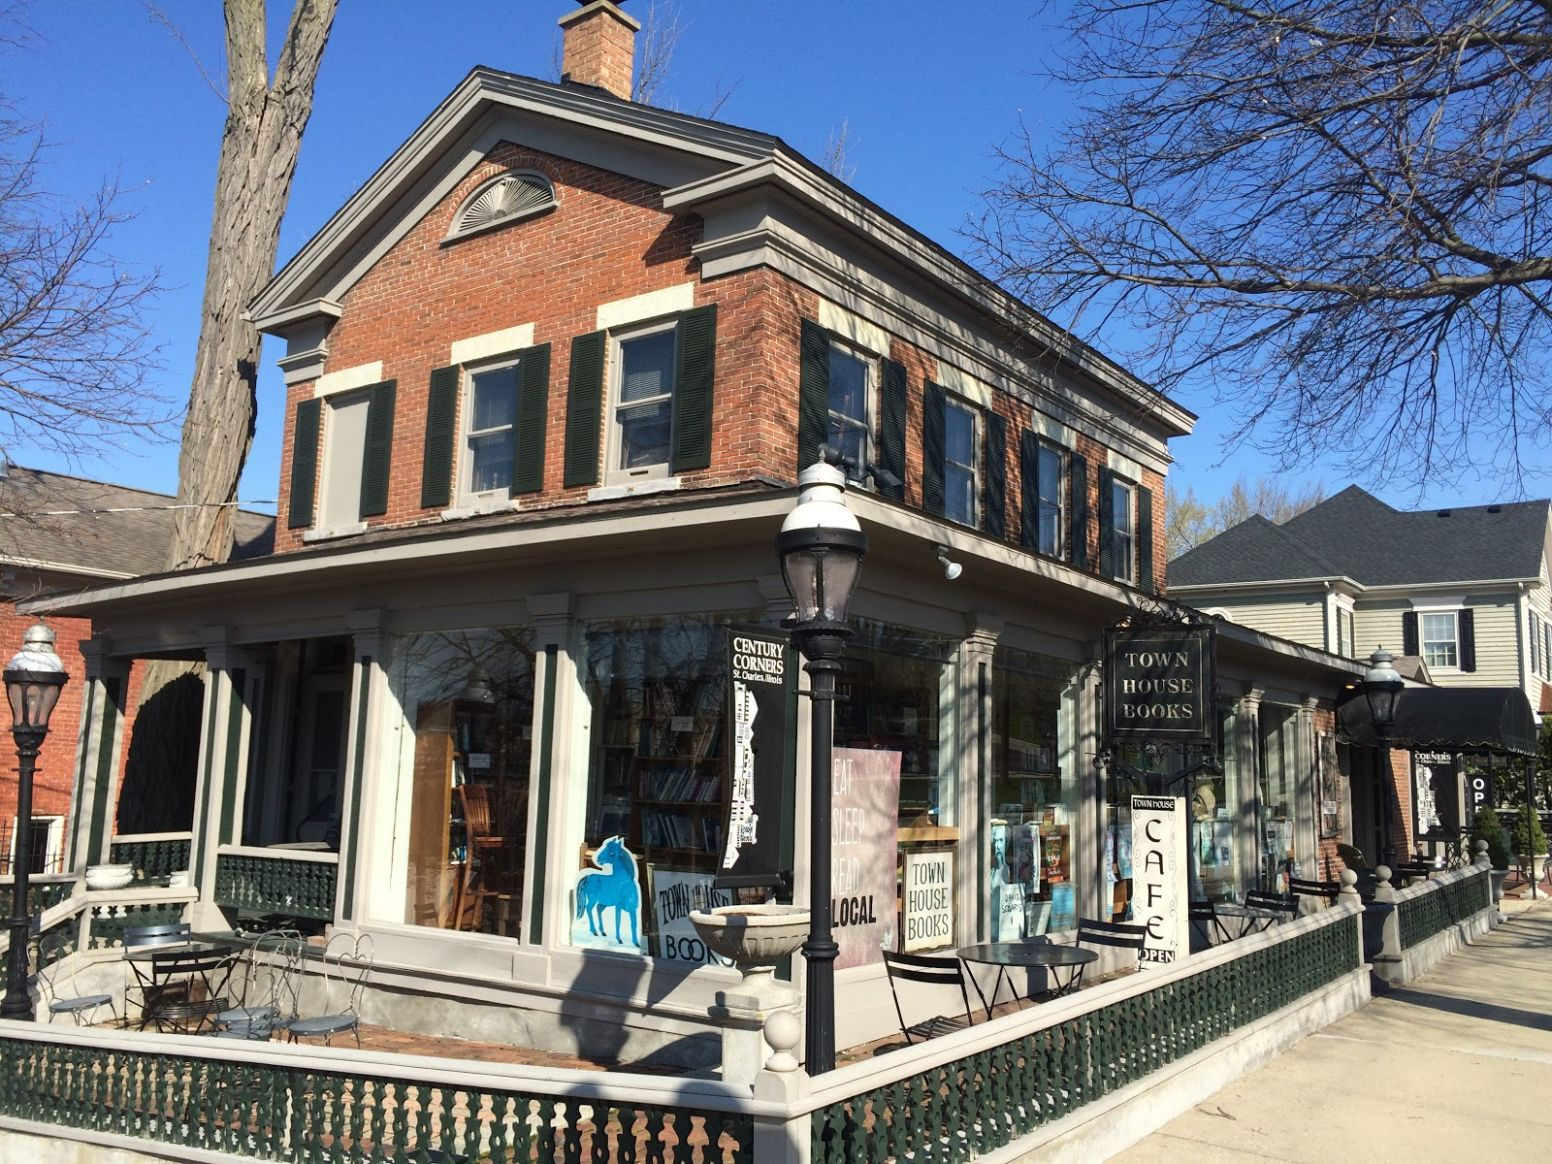 The Indie Bob Spot: Town House Books & Cafe - St. Charles, IL